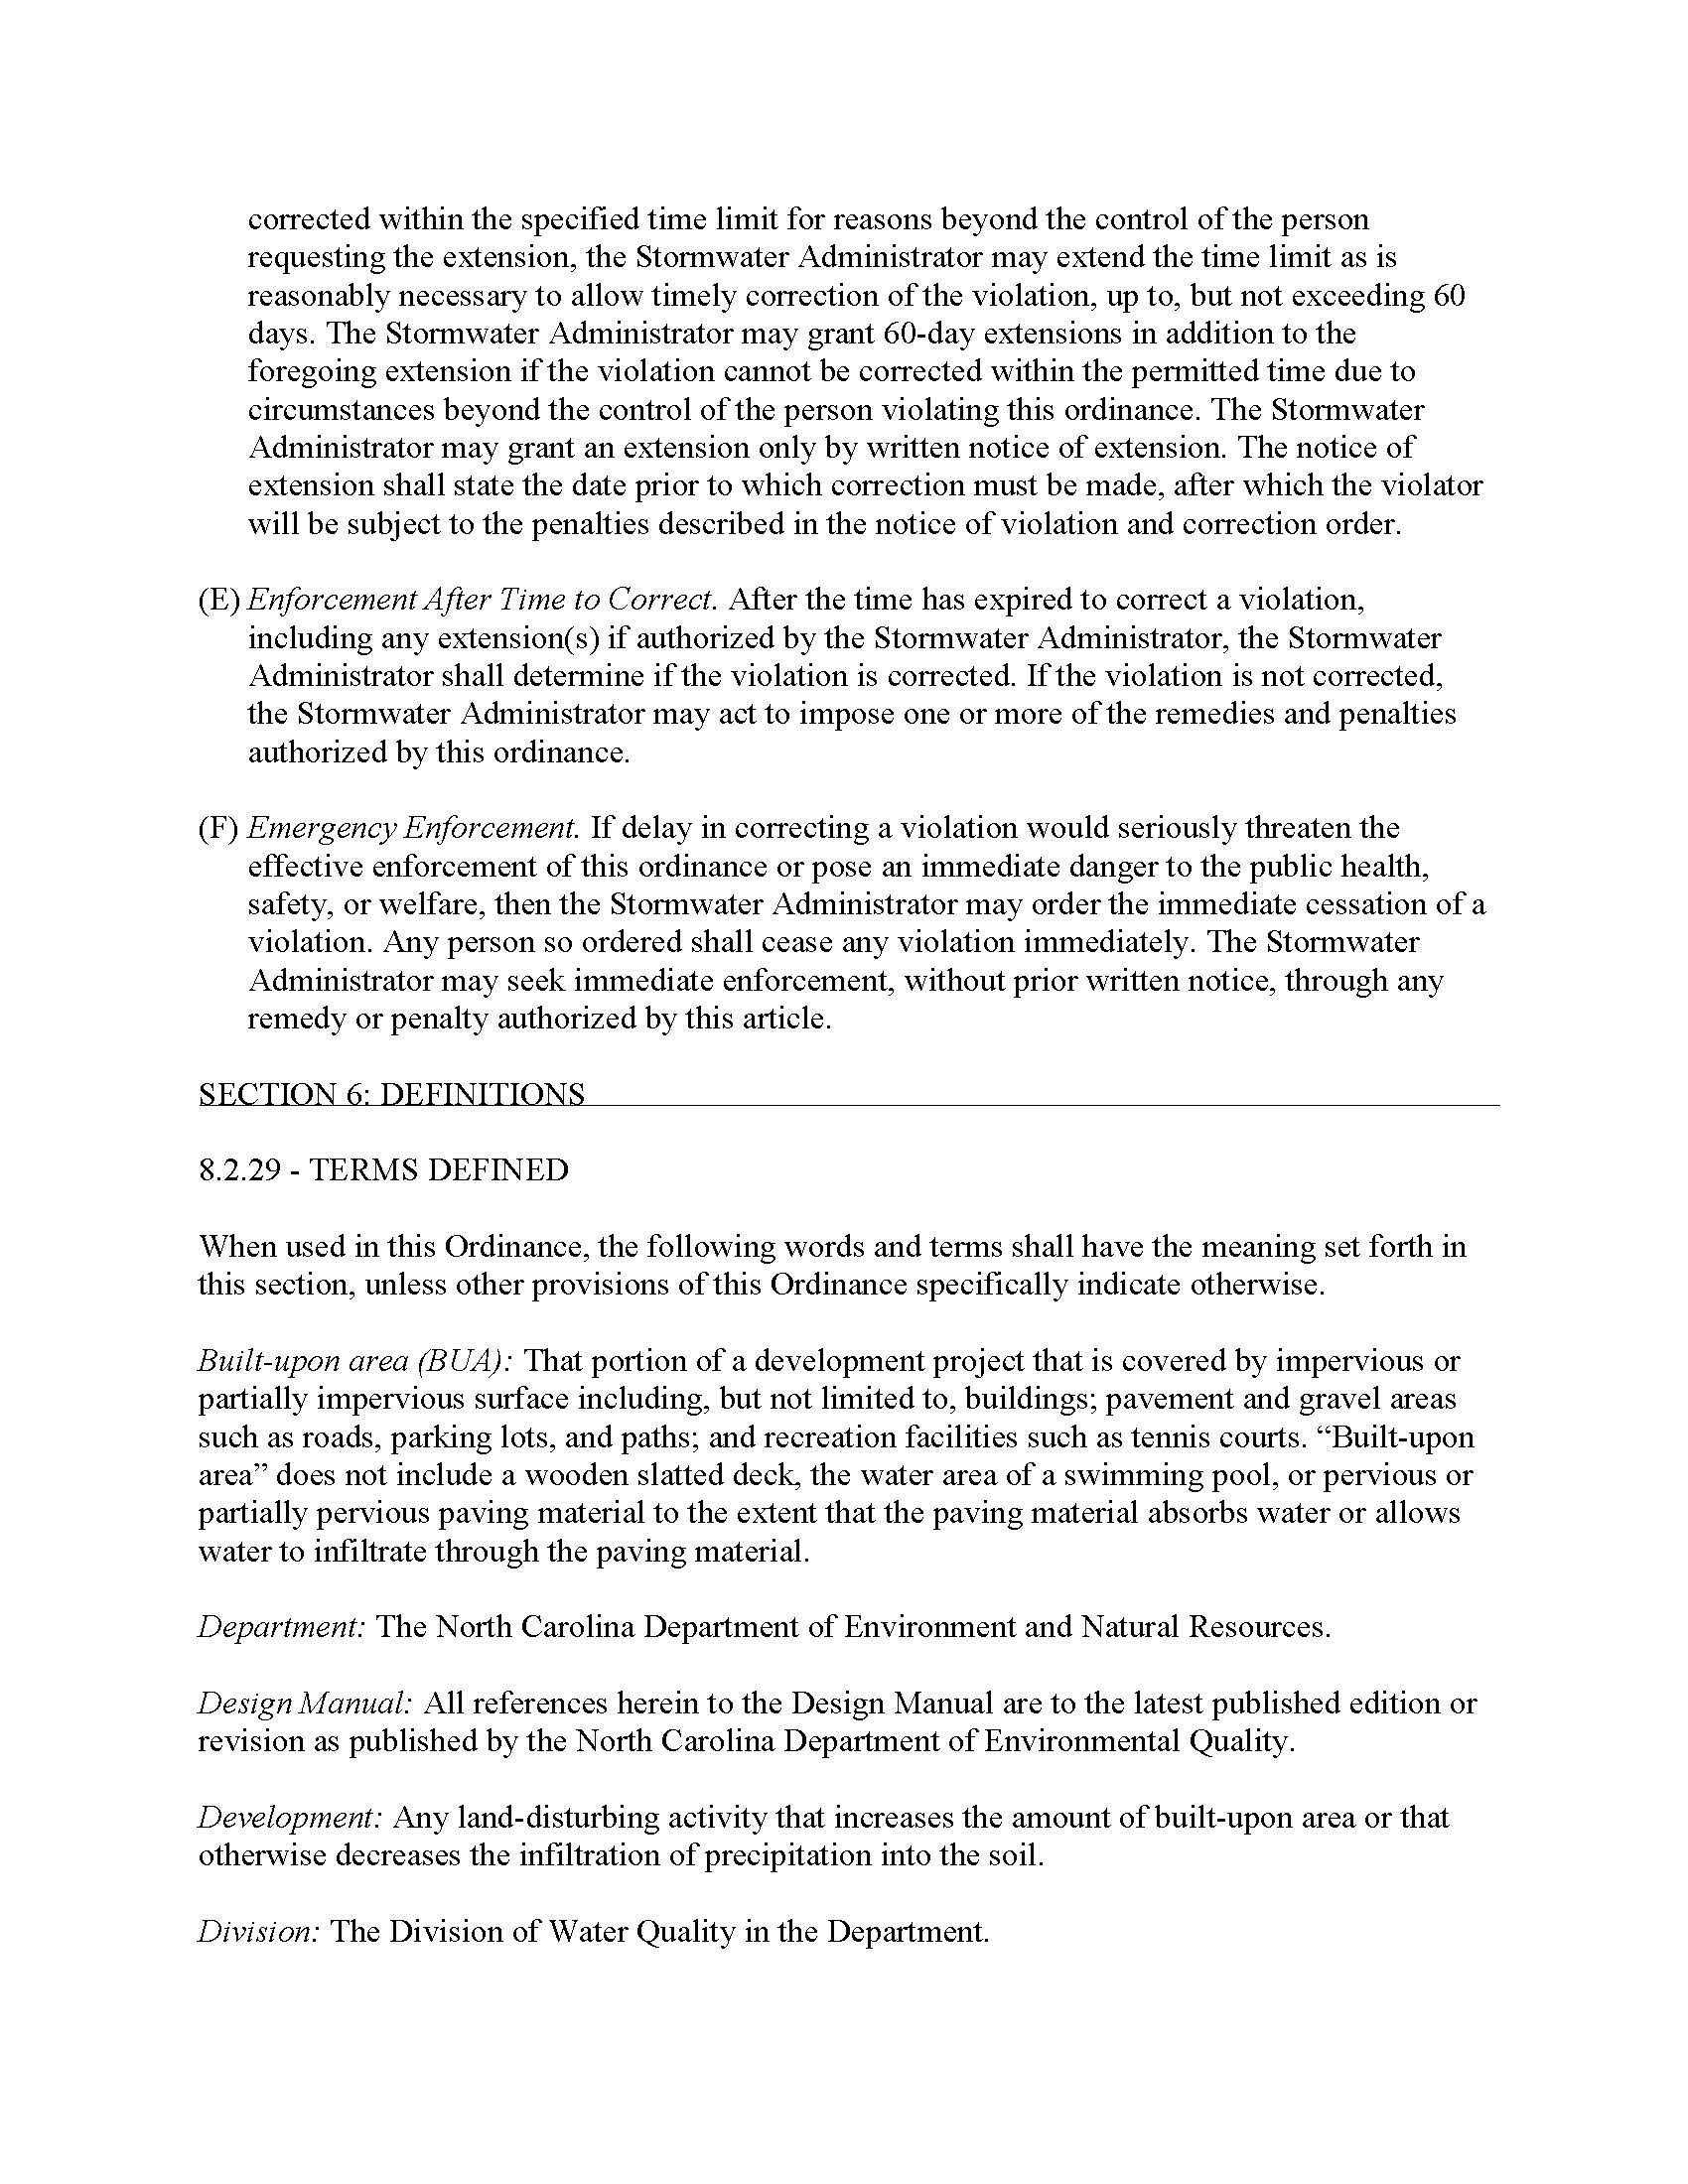 post_construction_stormwater_ordinance_Page_23